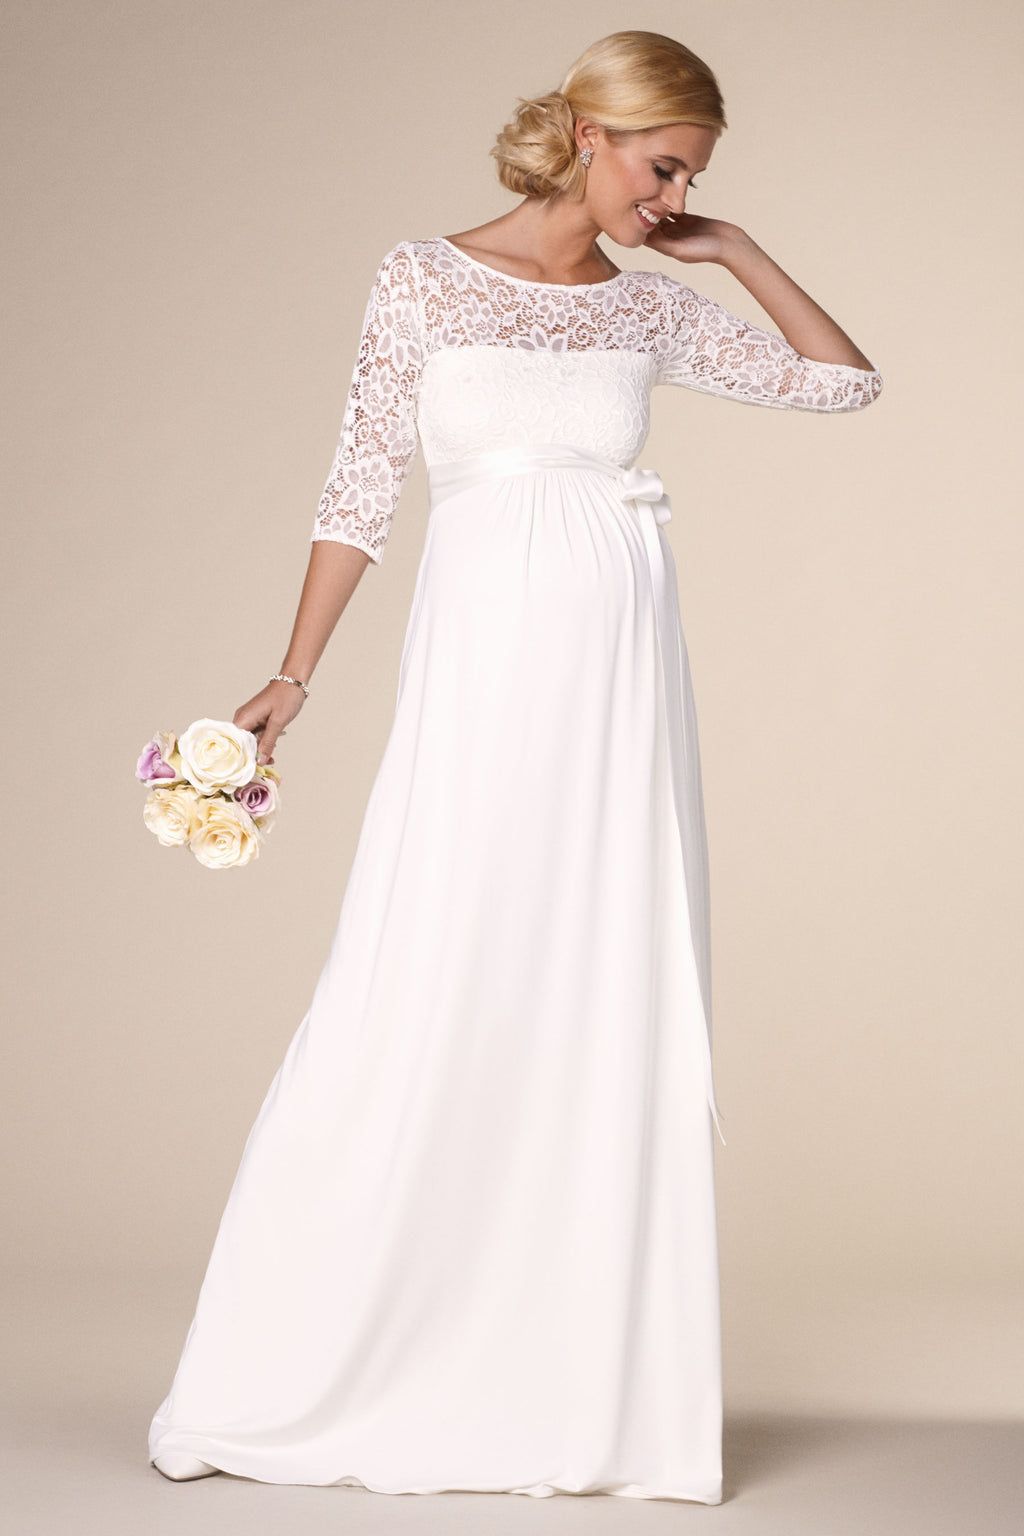 Tiffany Rose Lucia Maternity Wedding Gown - Seven Women Maternity